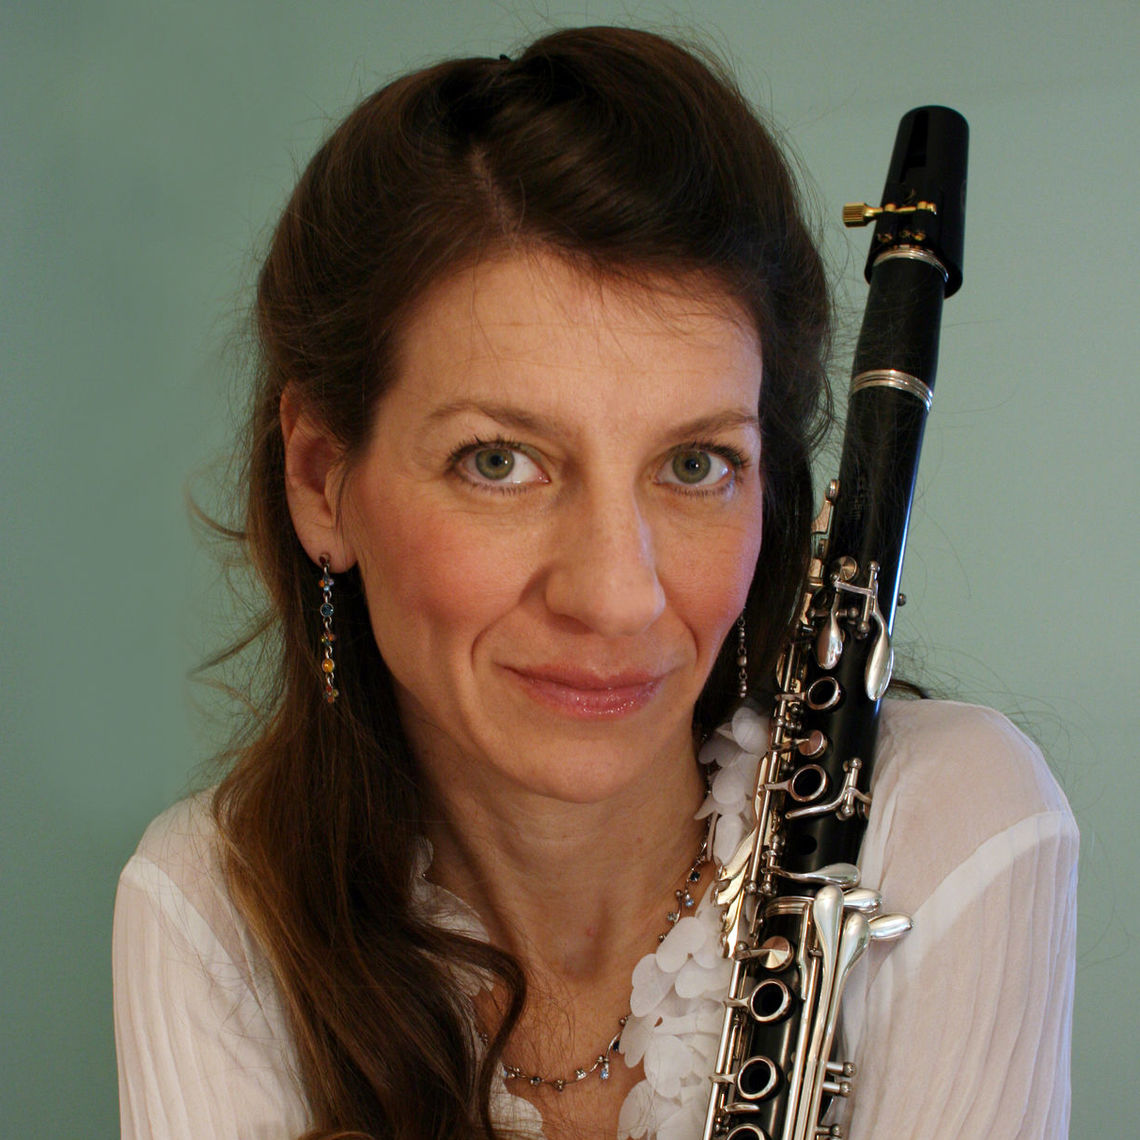 Clarinetist Doris Hall-Gulati